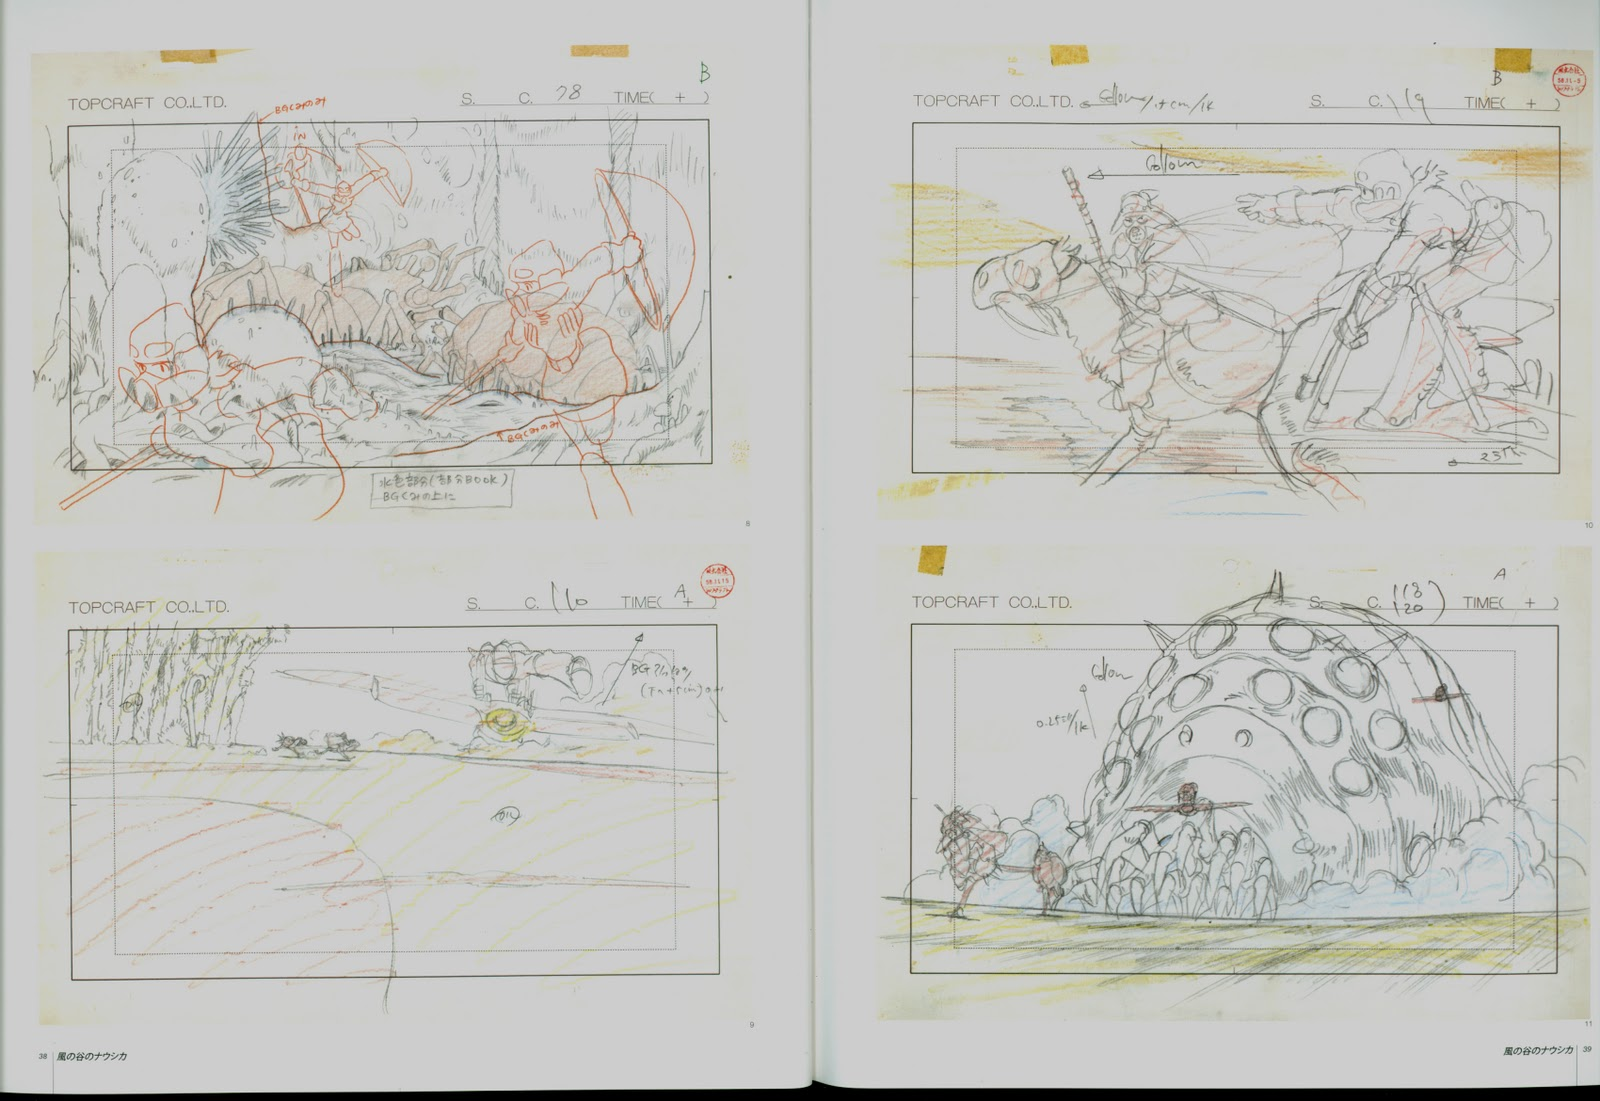 nausicaa_of_the_valley_of_the_wind_concept_art_storyboard_03.jpg